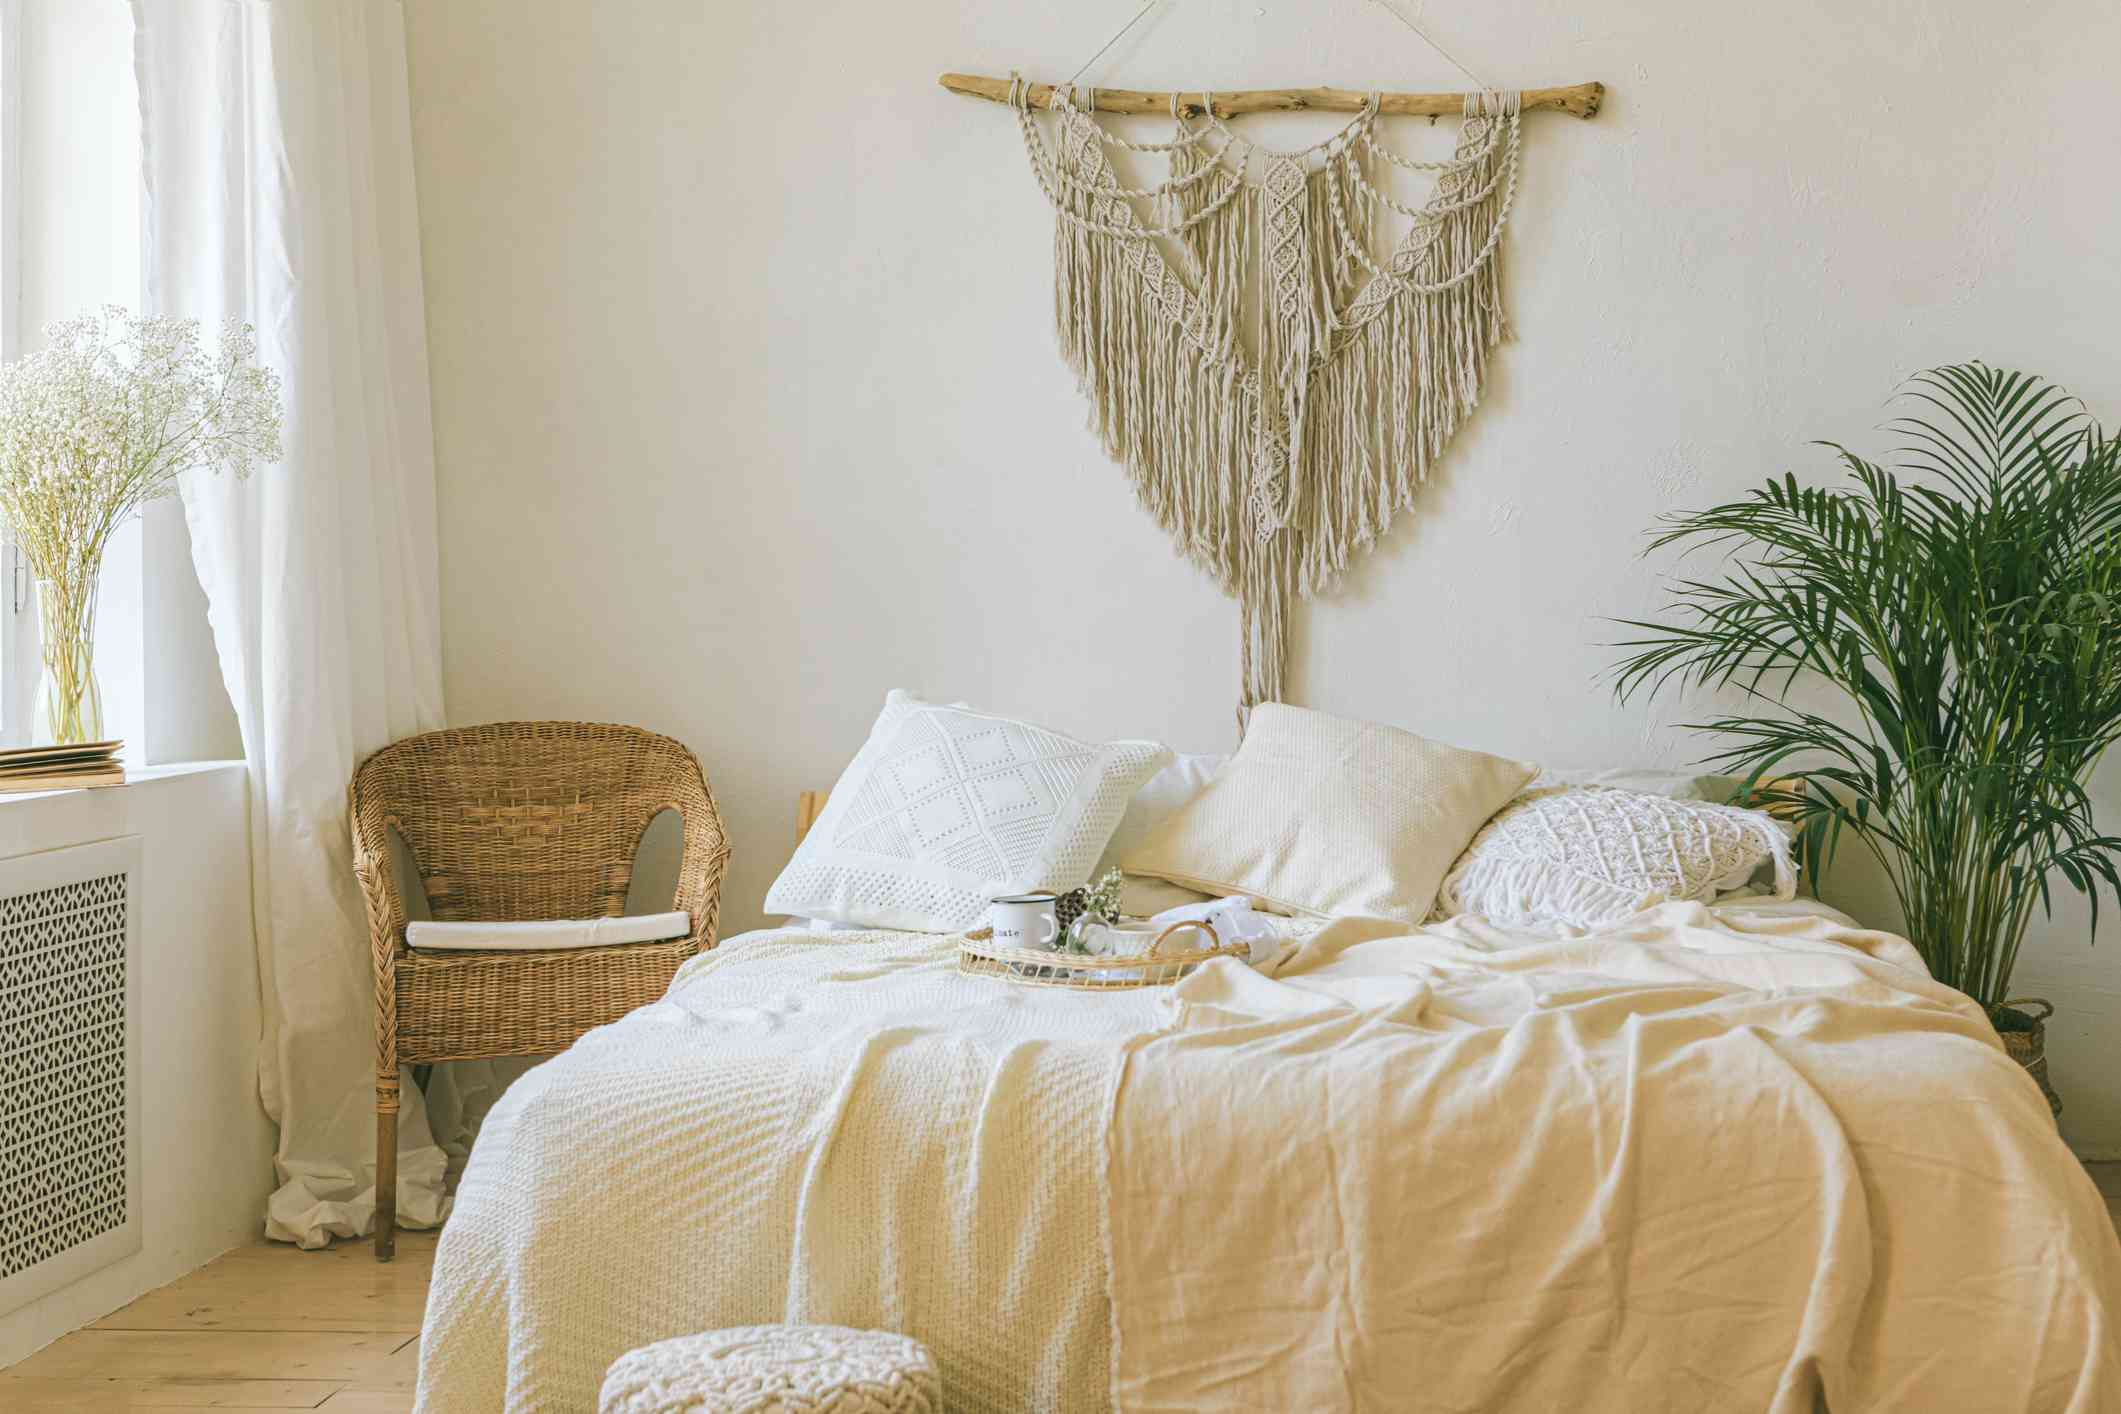 macrame wall hanging in a bedroom